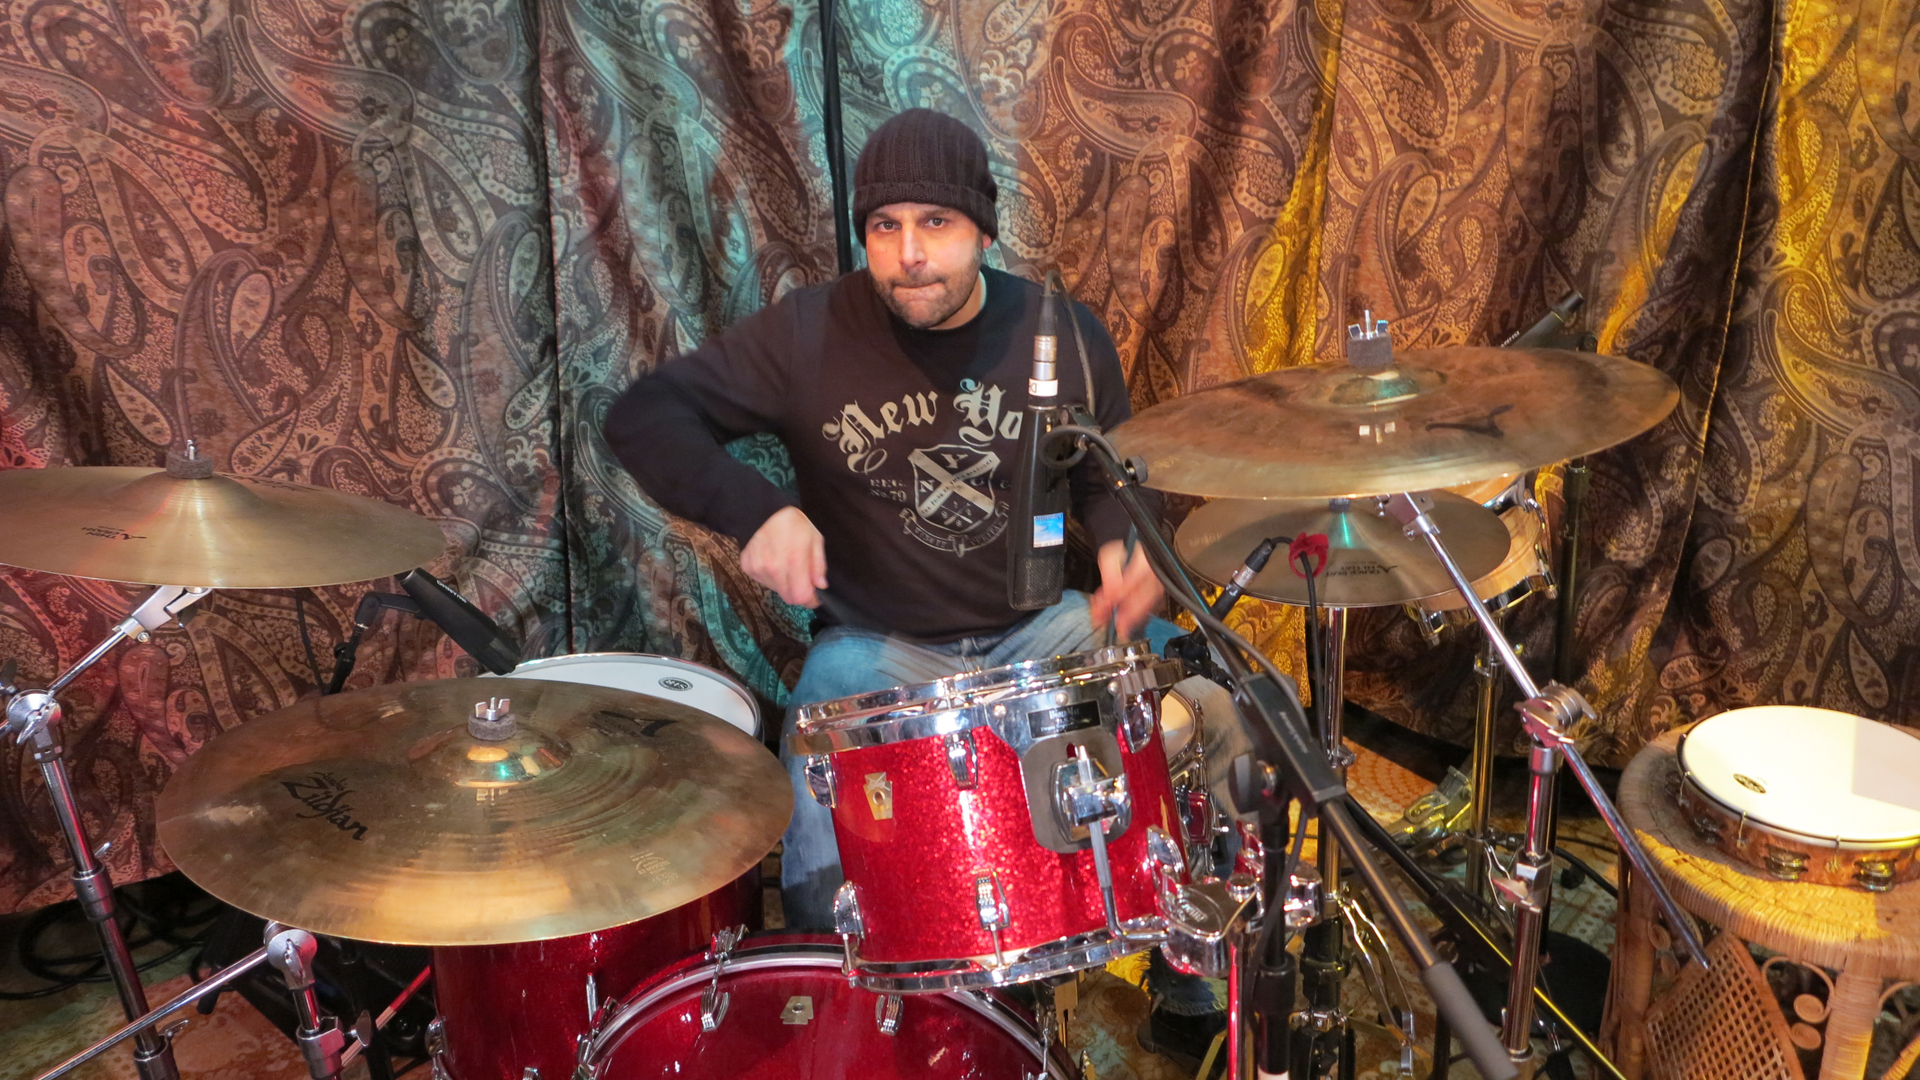 Joey on Drums